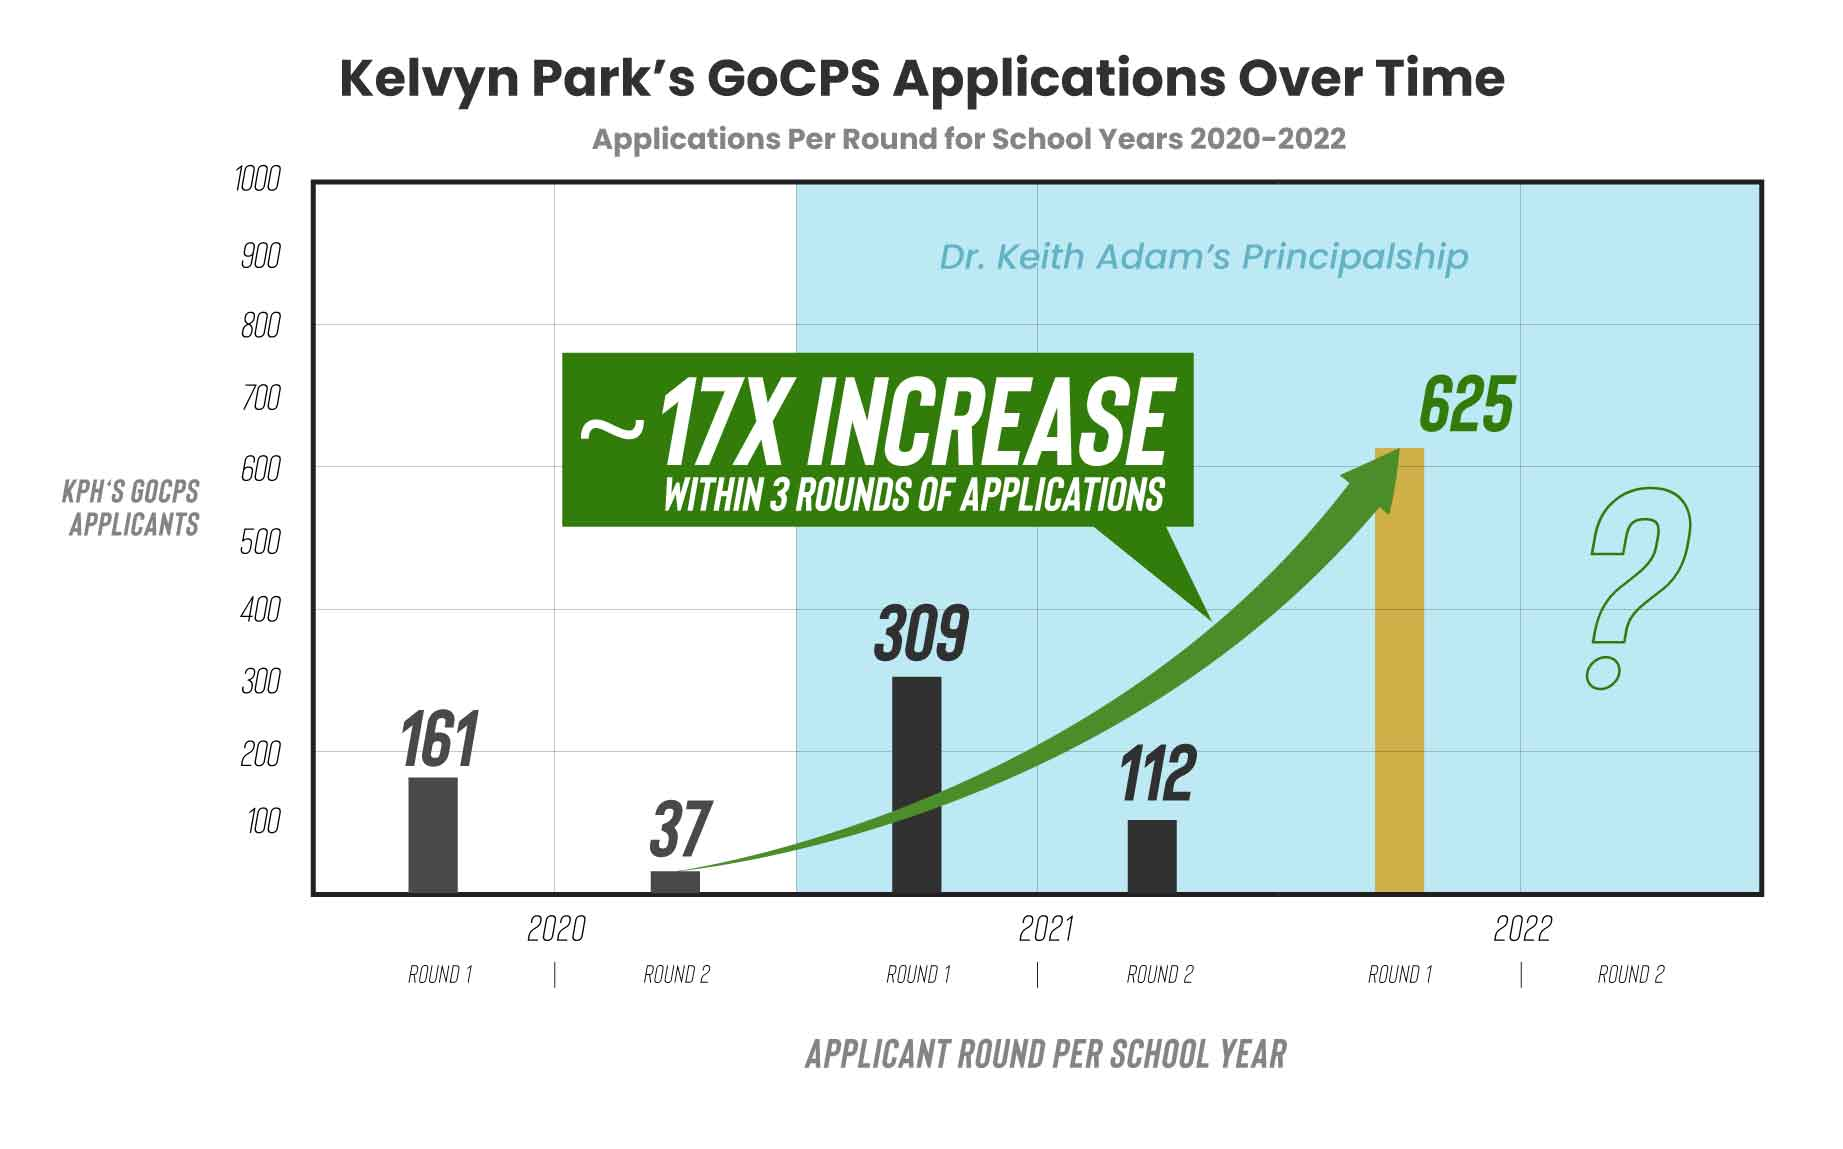 Kelvyn Park's GoCPS Applications over time